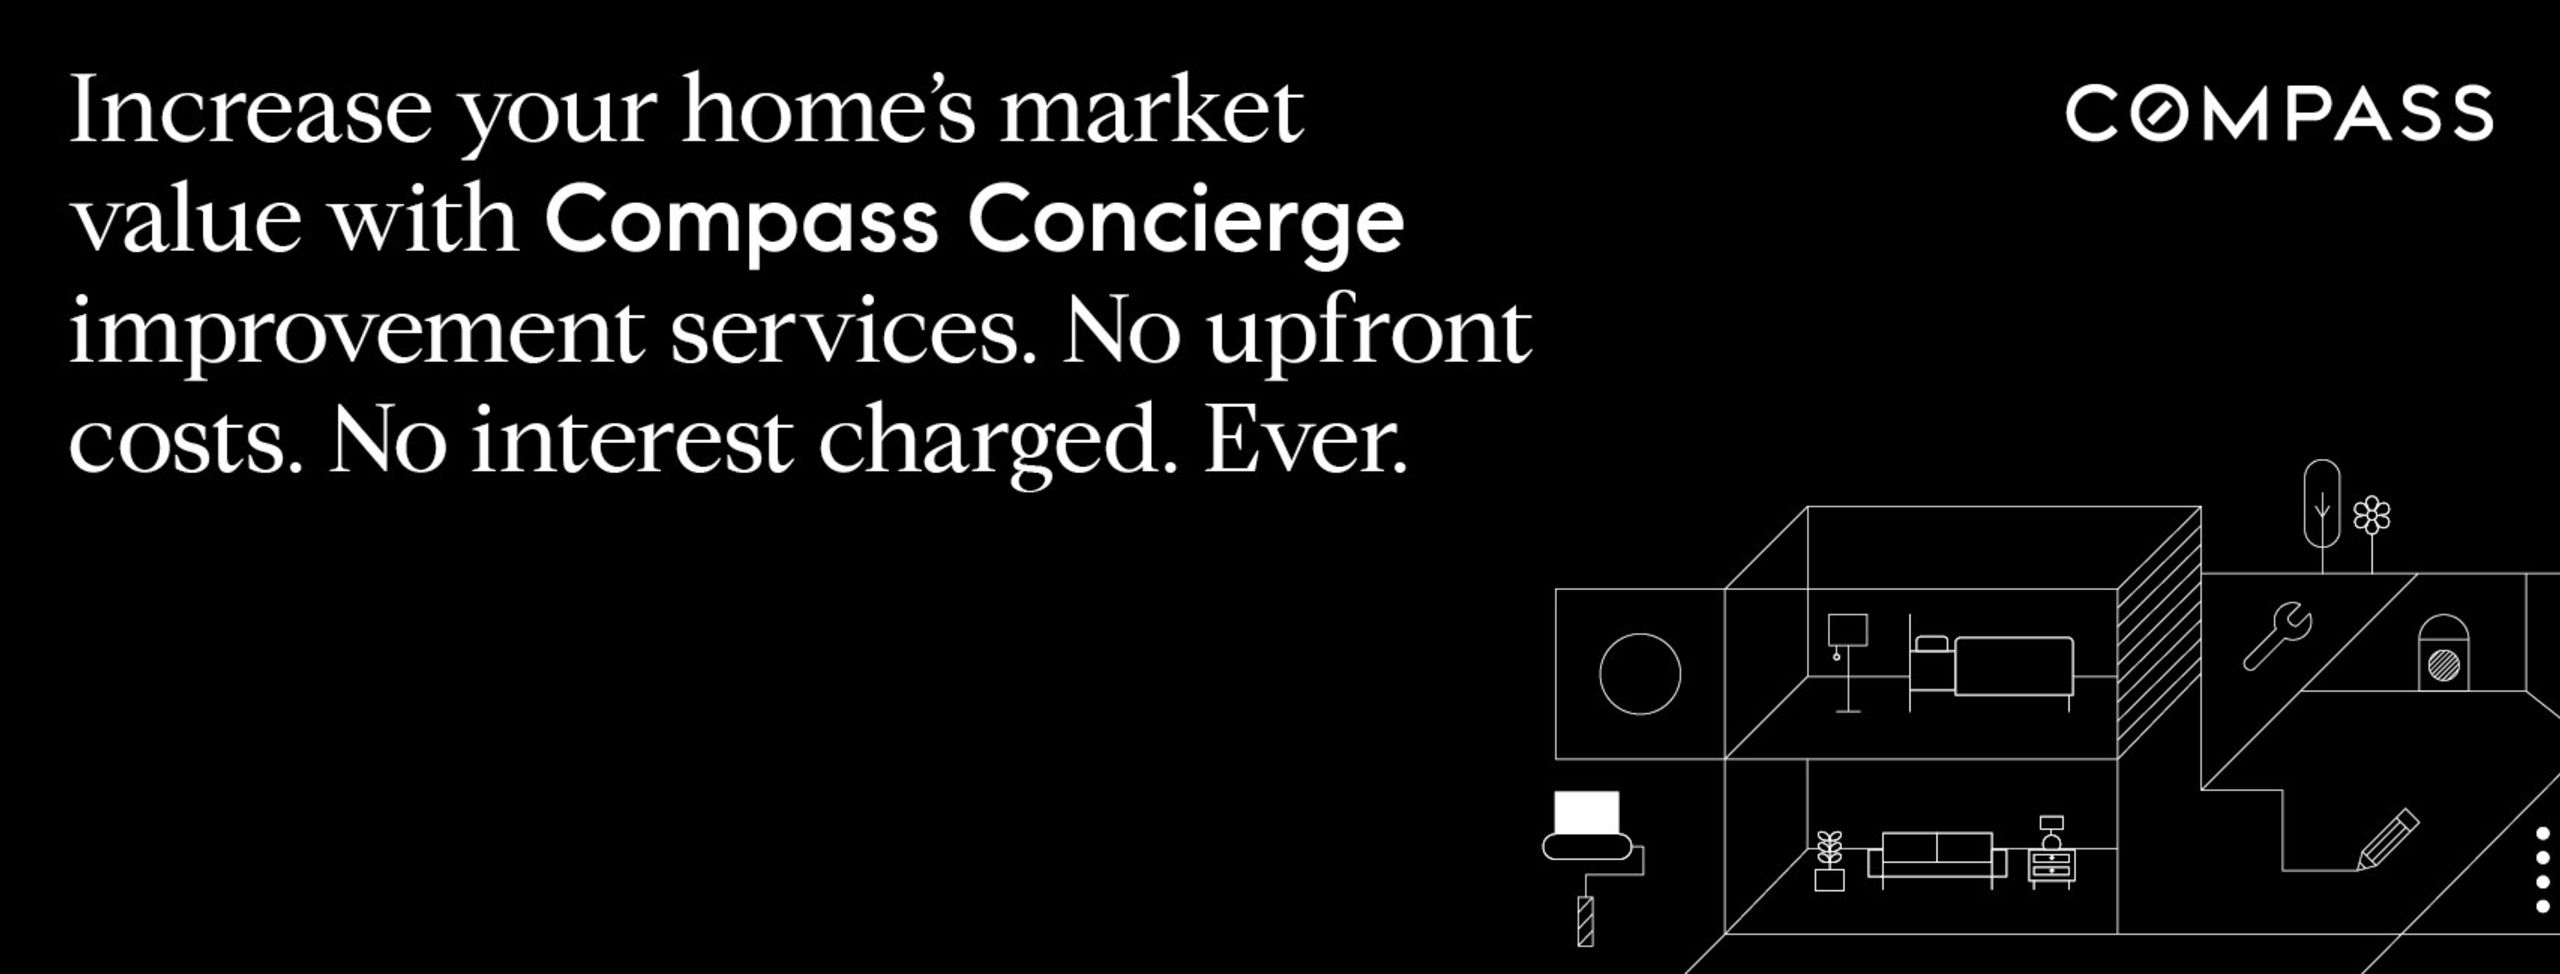 Increase your home's market value with Compass Concierge